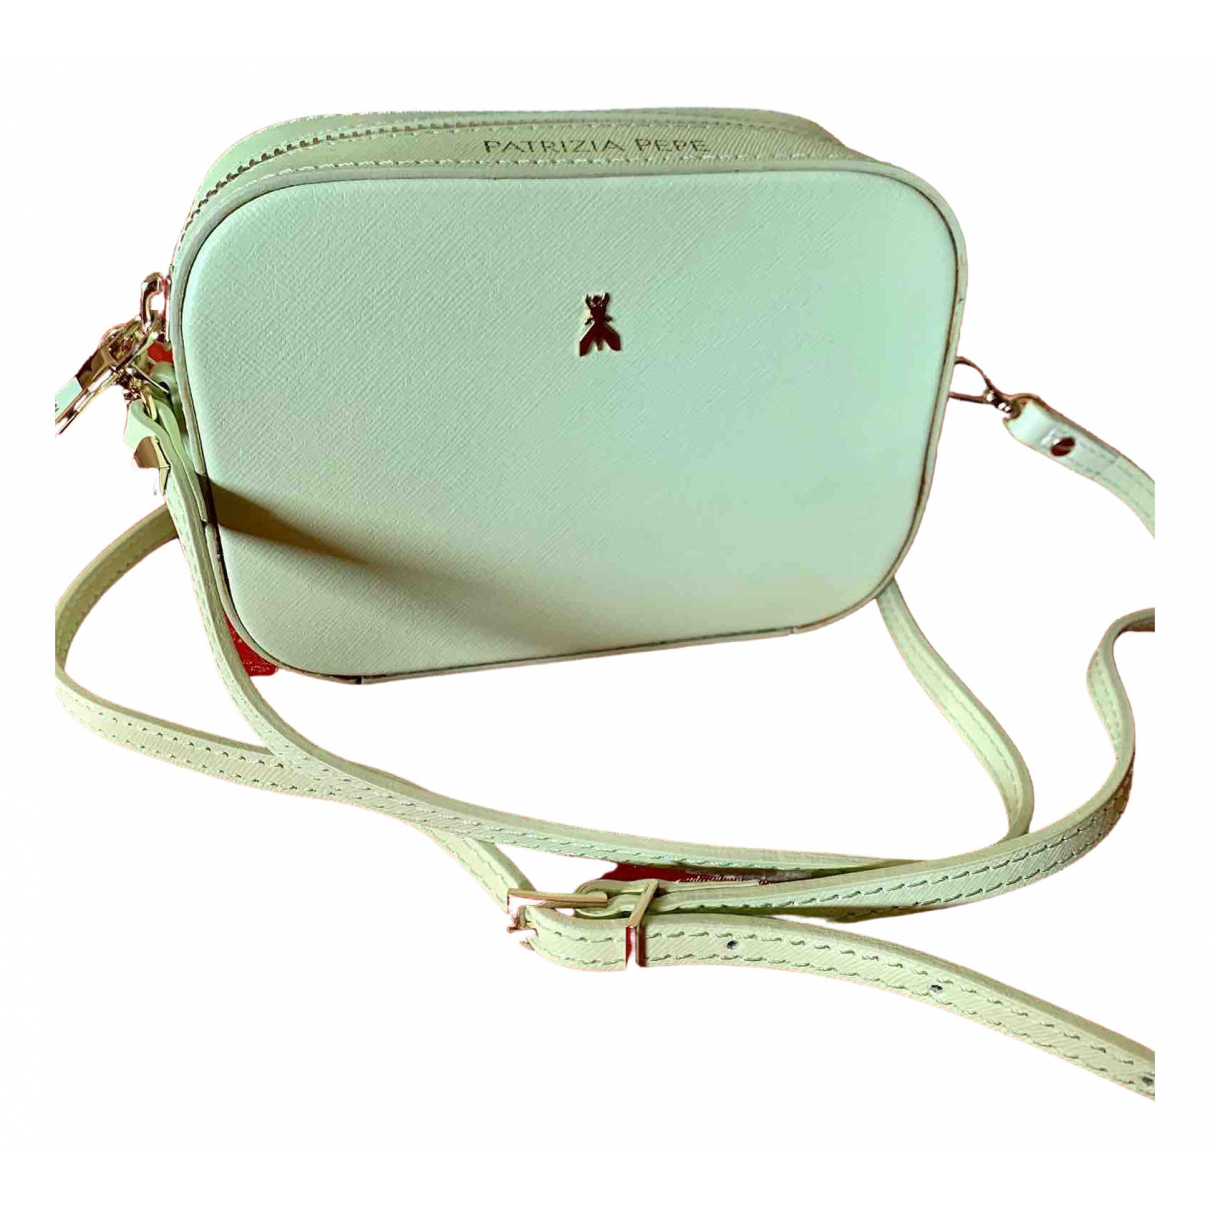 Patrizia Pepe \N Green Leather handbag for Women \N